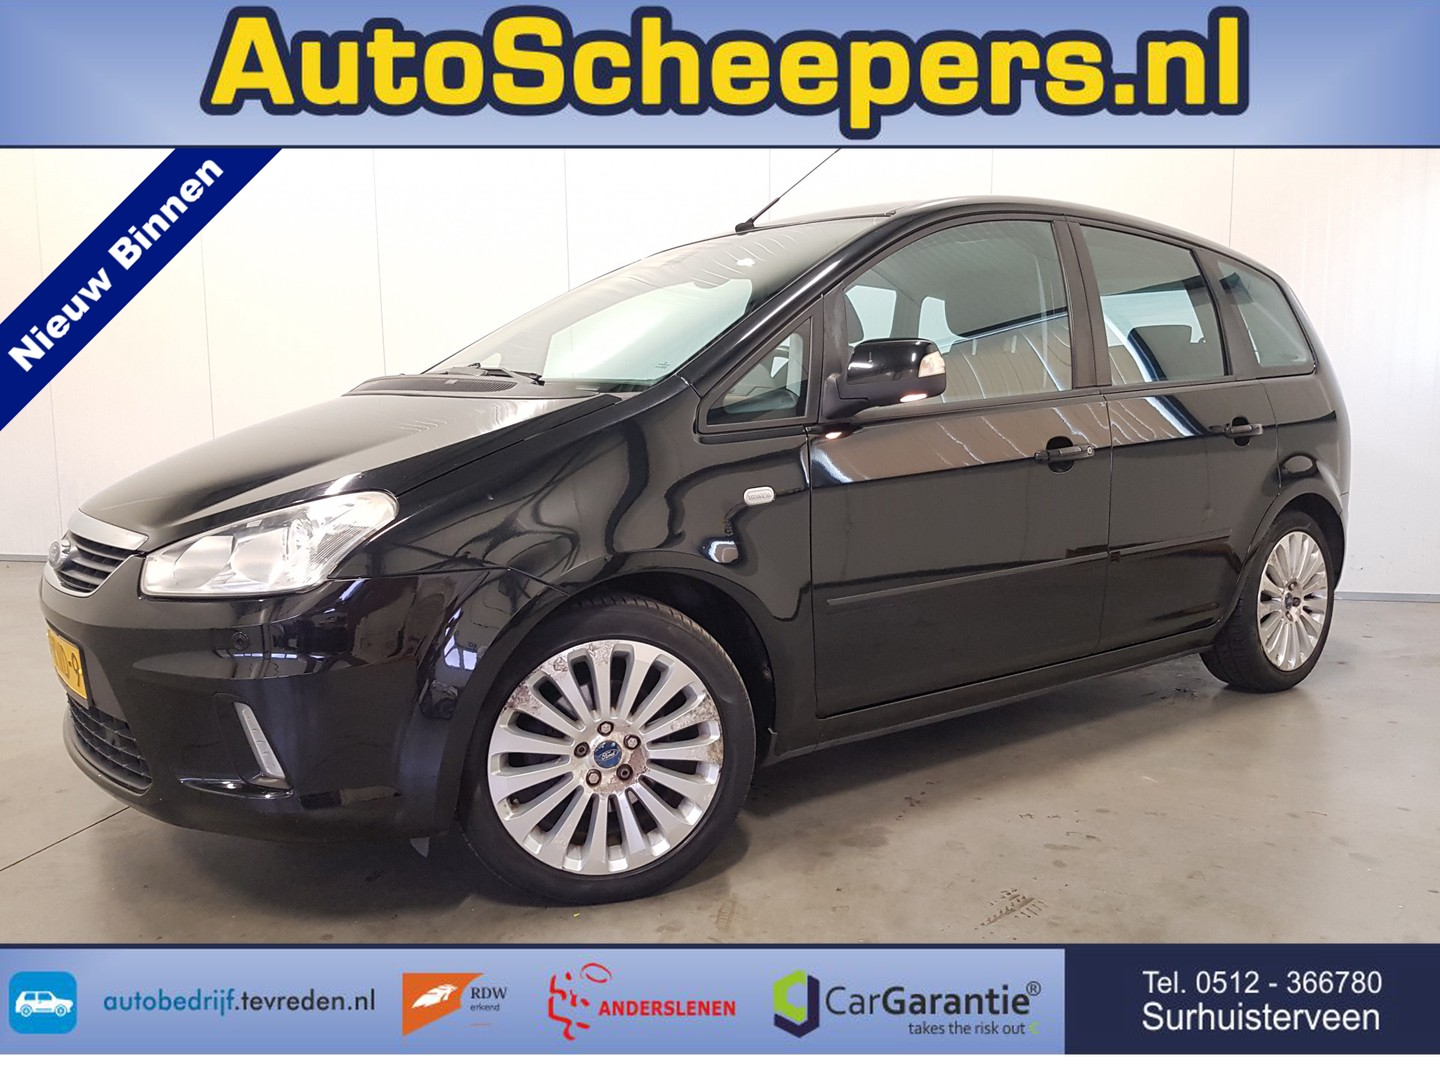 Ford C-max 1.8-16v limited navi/clima/cruise/pdc/trhaak